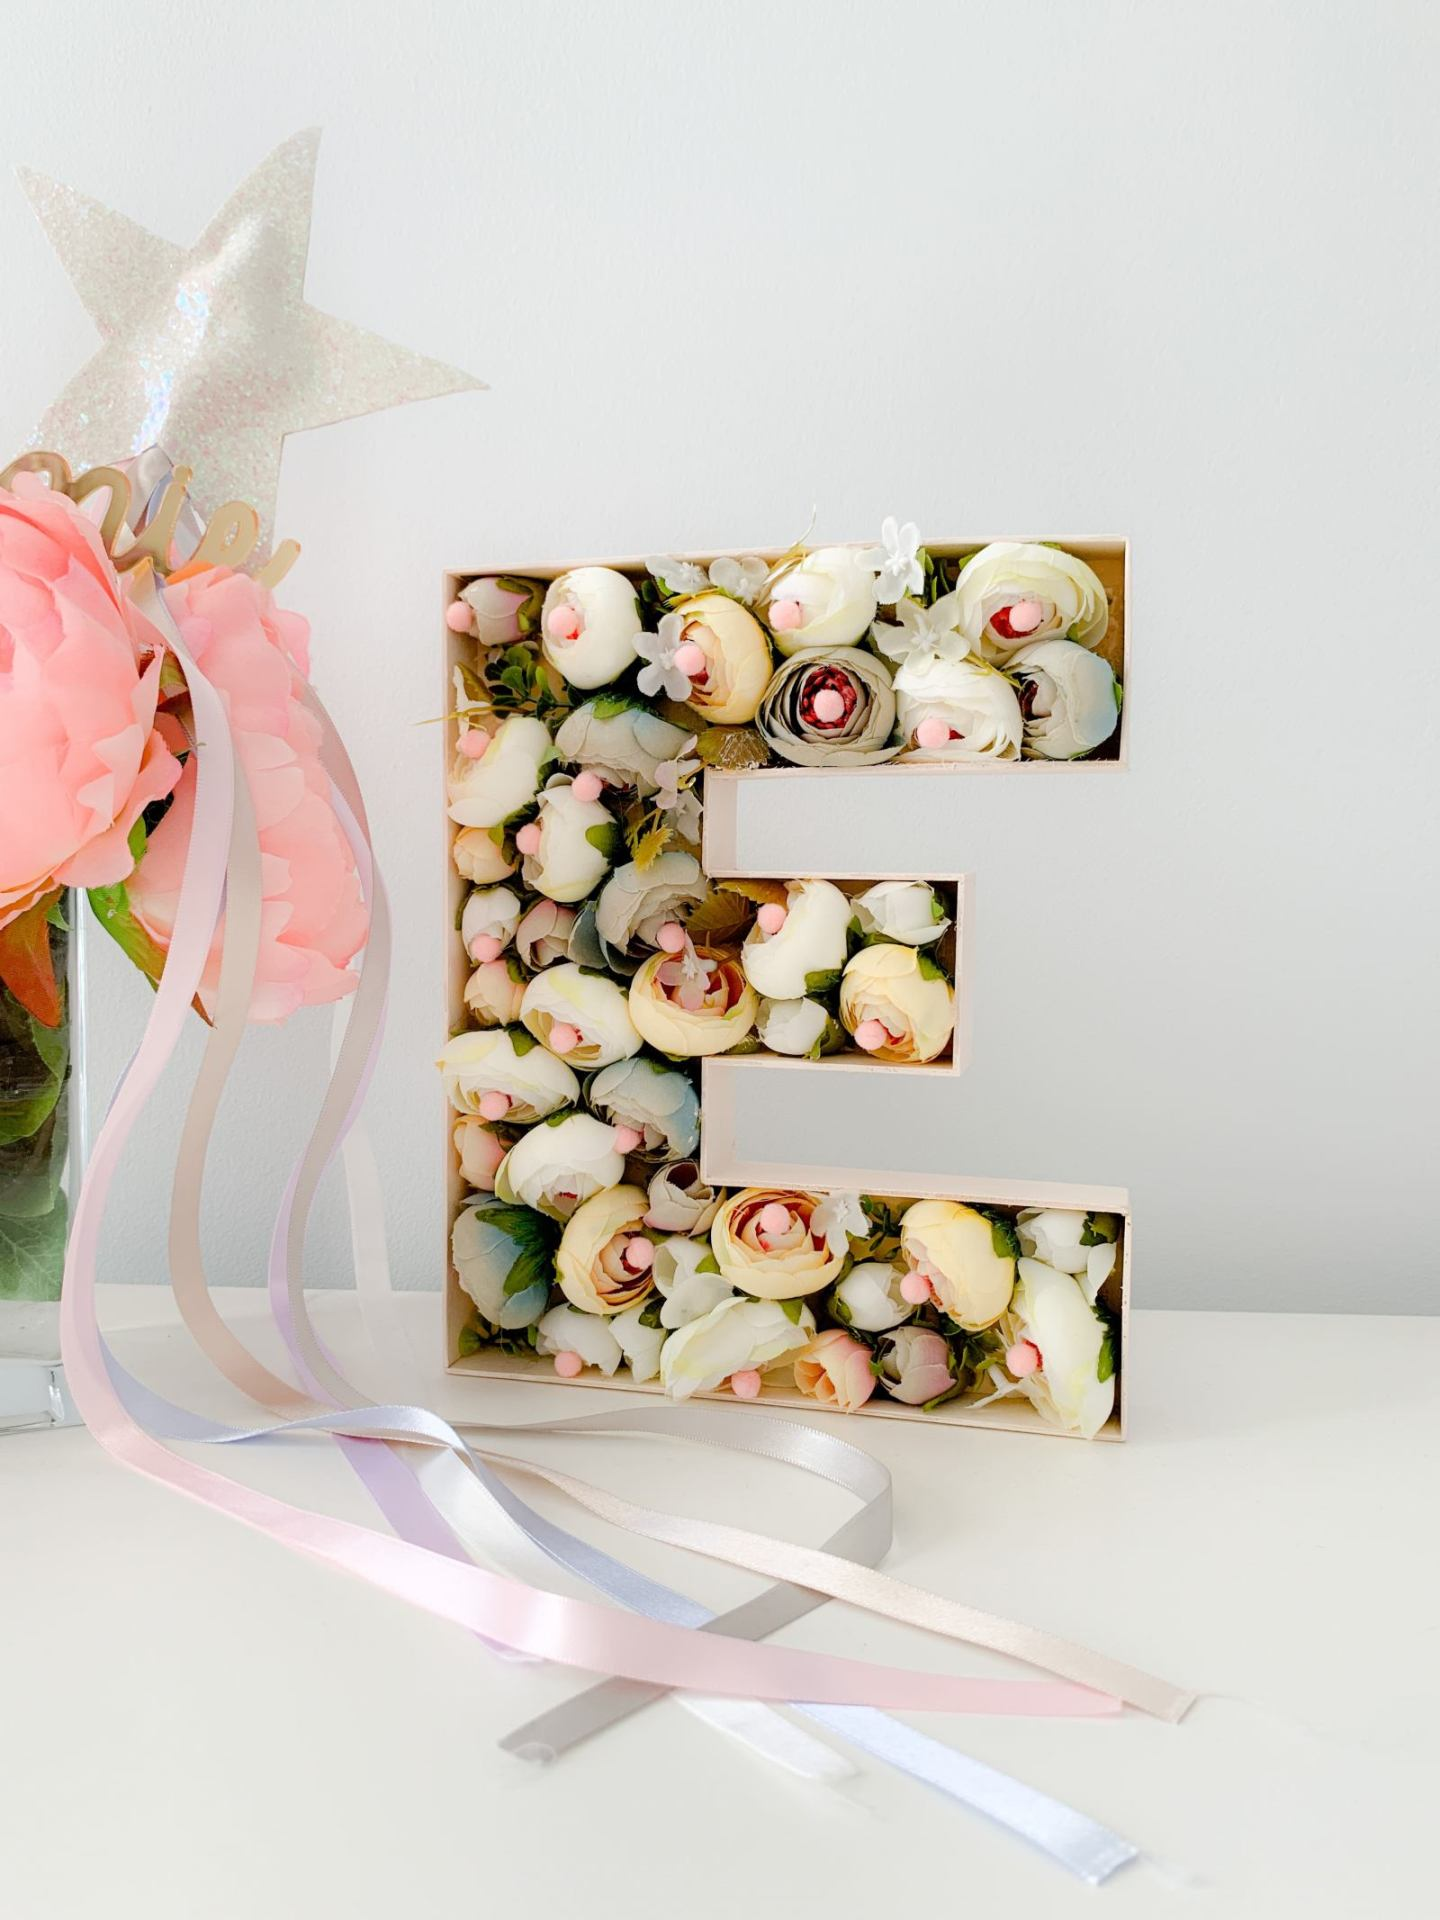 DIY 3D FLOWER MONOGRAM LETTER